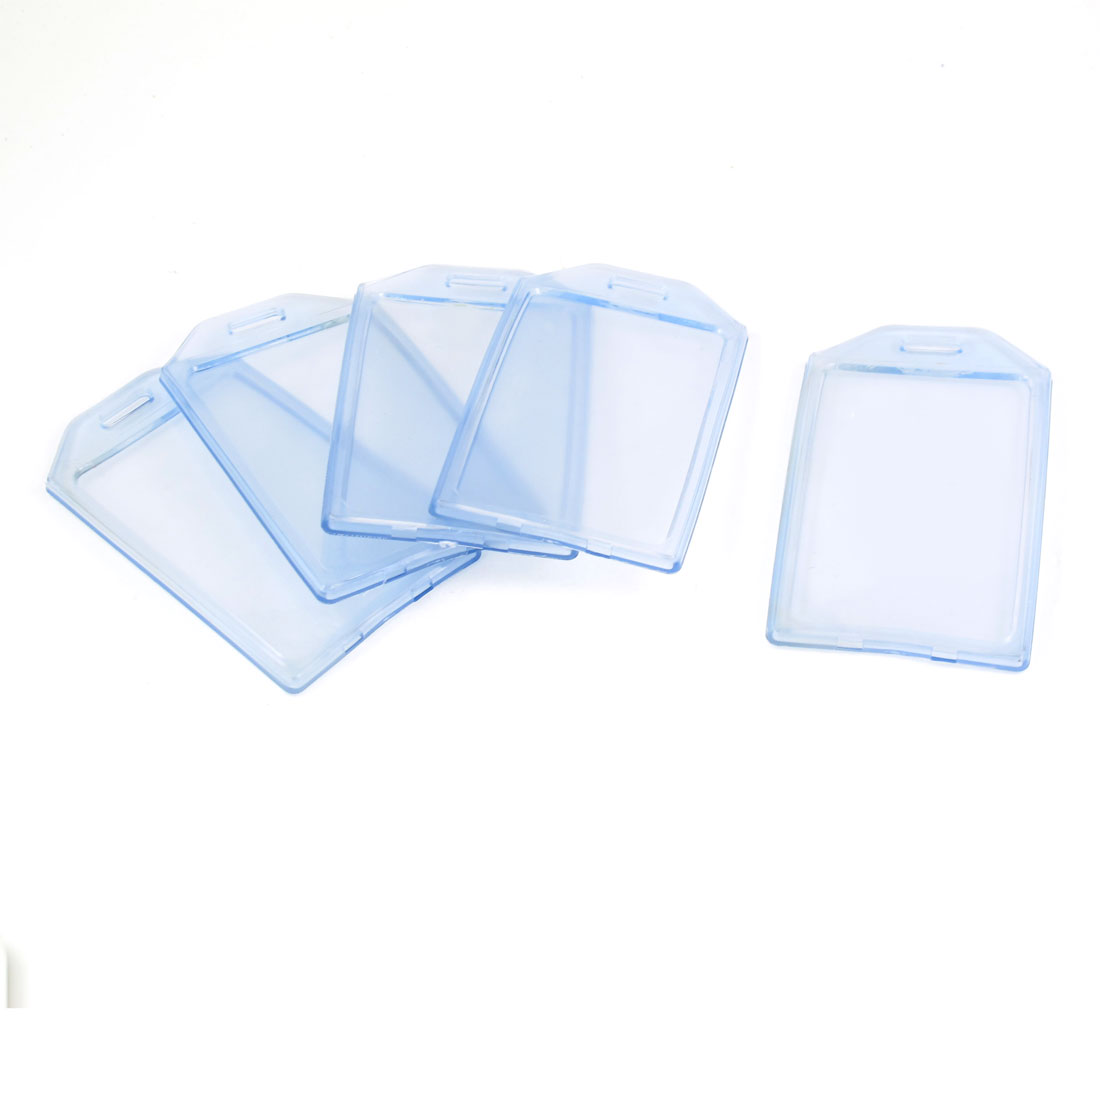 5 Pcs School Clear Blue Soft Plastic Vertical A7 Name Card Badge Holders